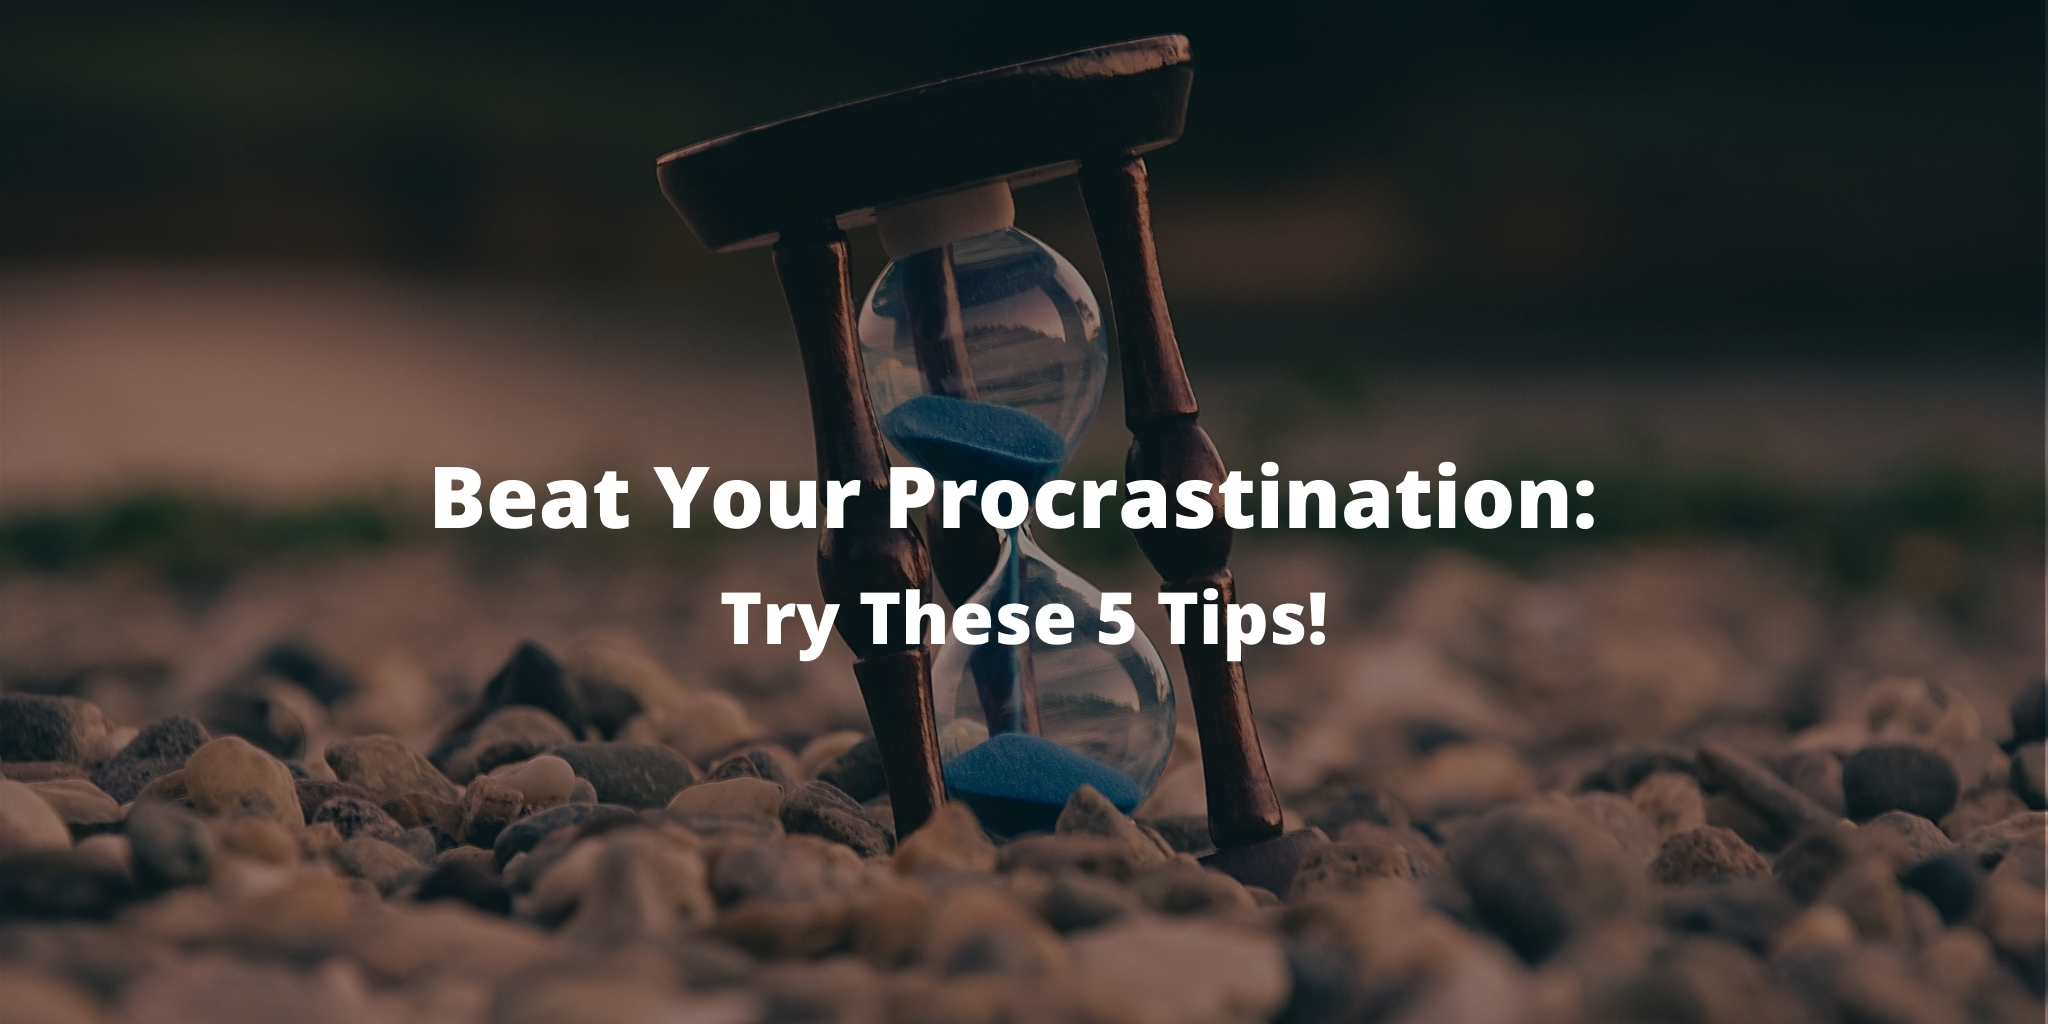 Beat Your Procrastination: Try These 5 Tips!